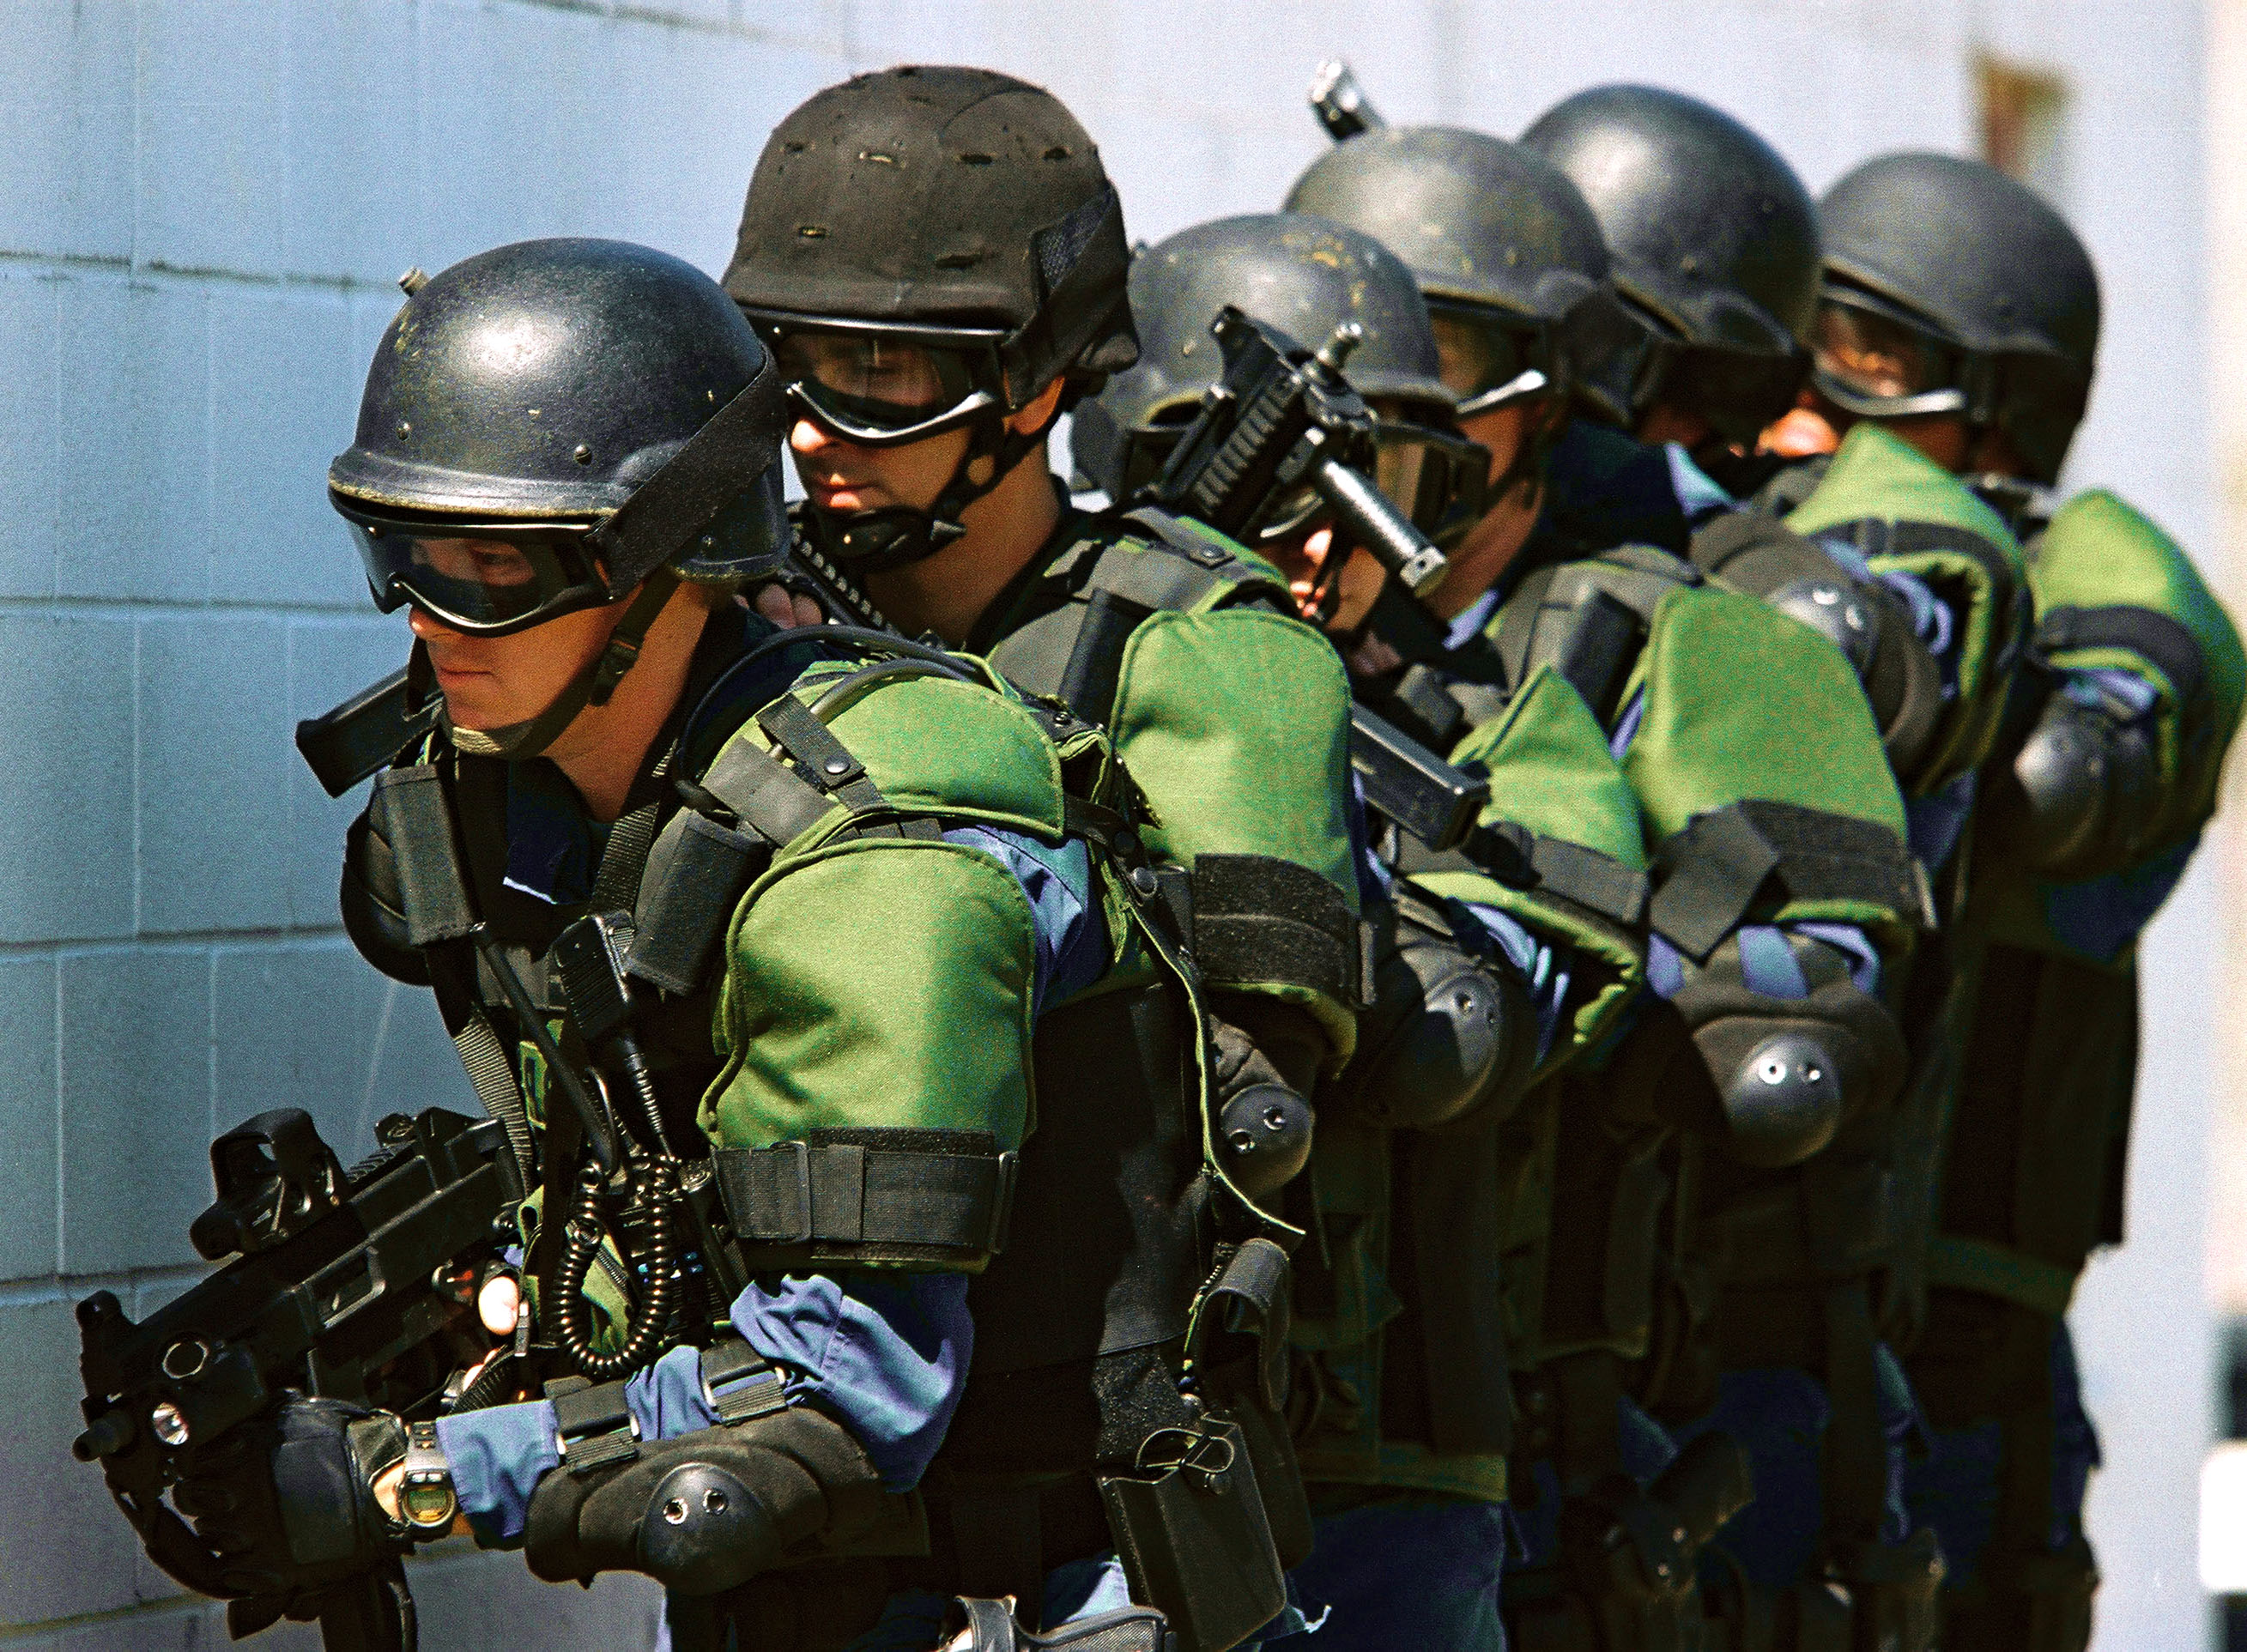 US_Customs_and_Border_Protection_officers (1)